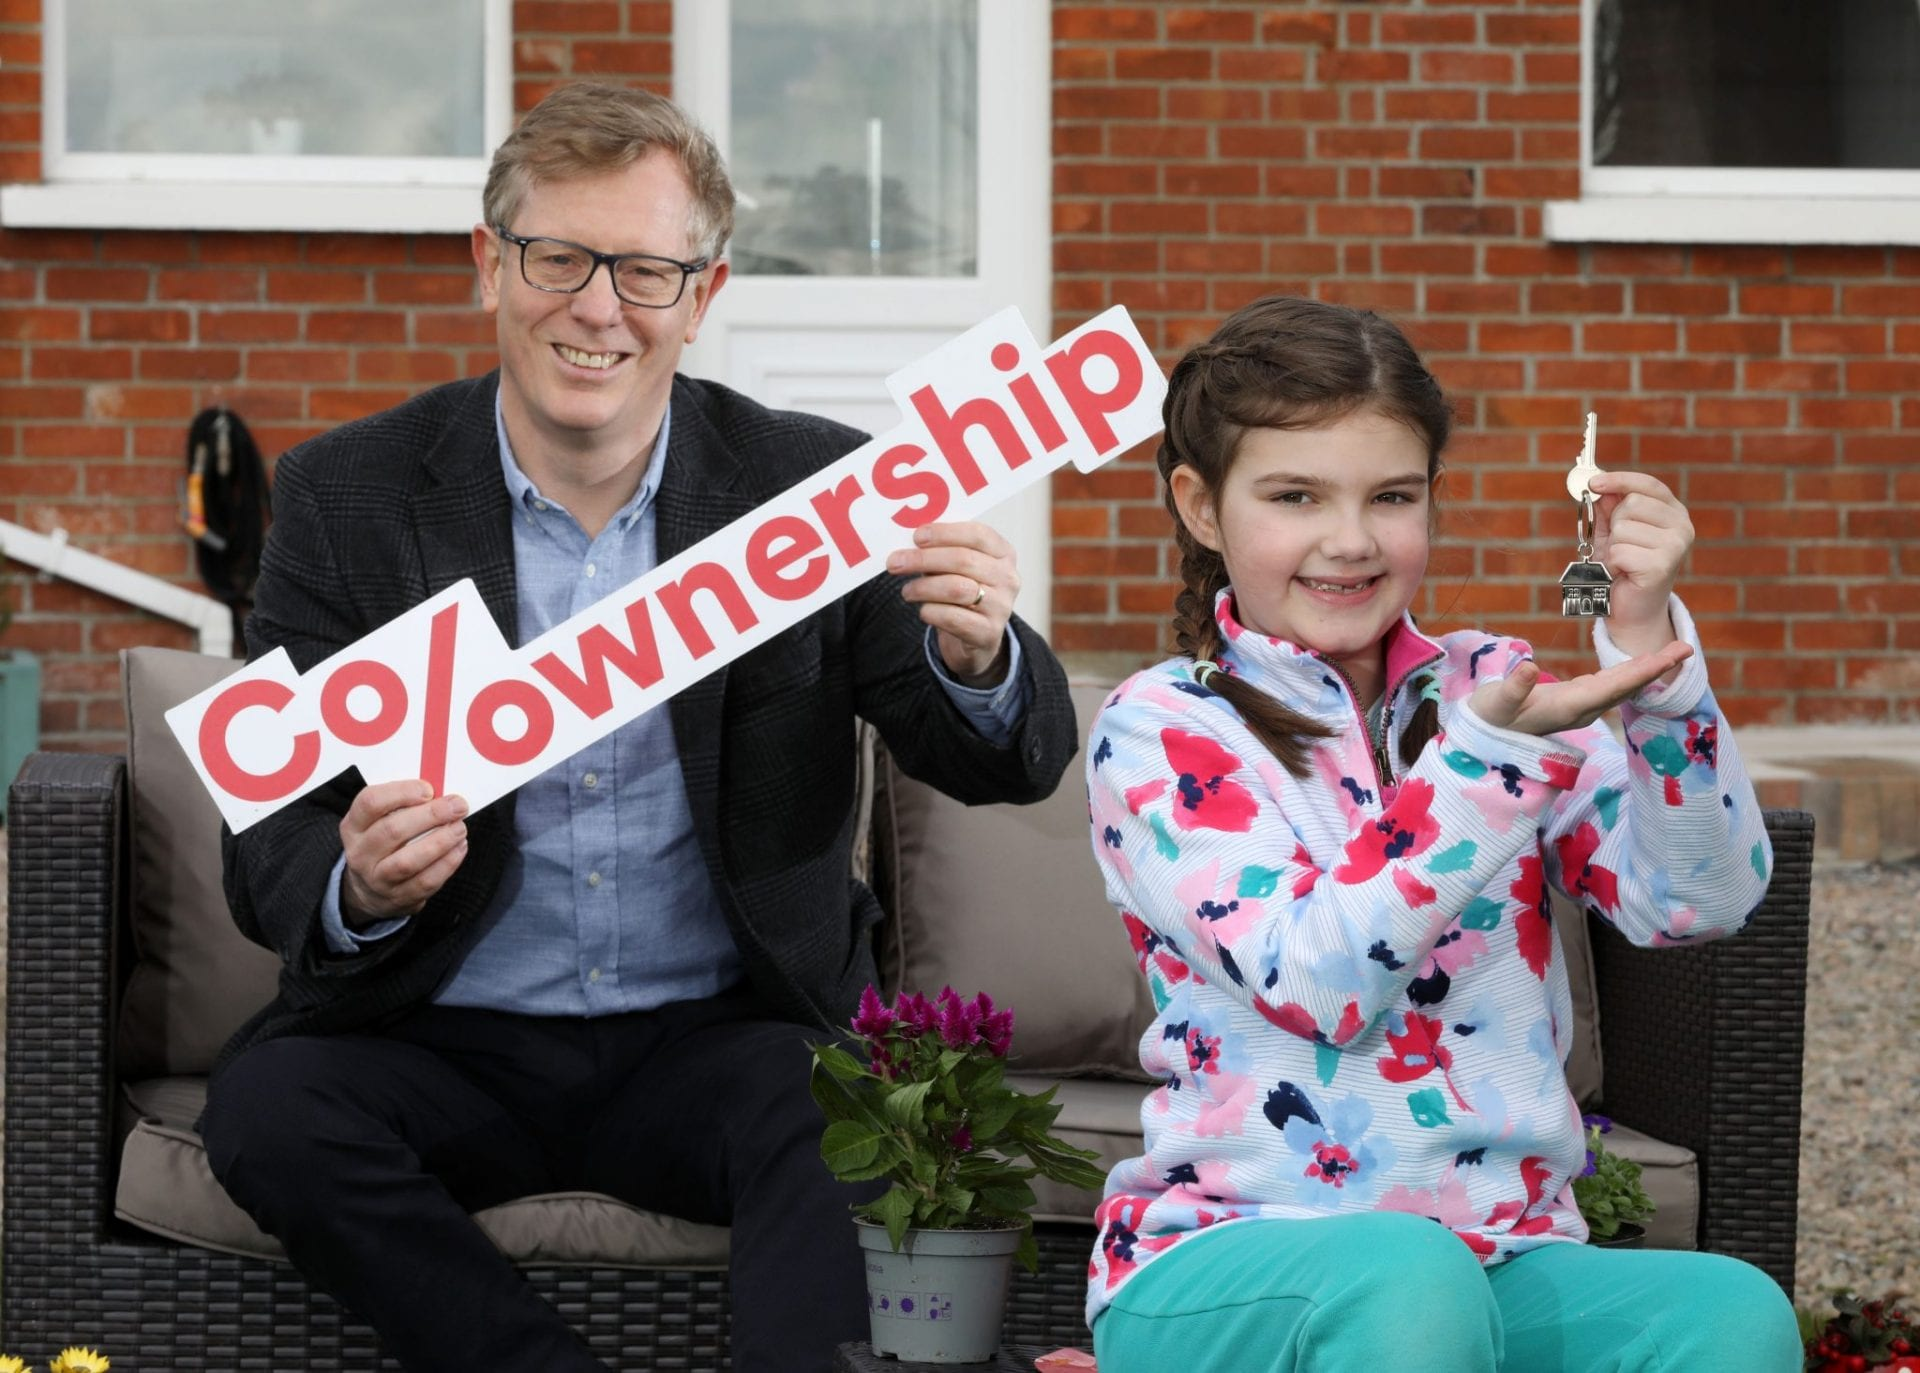 co-Ownership